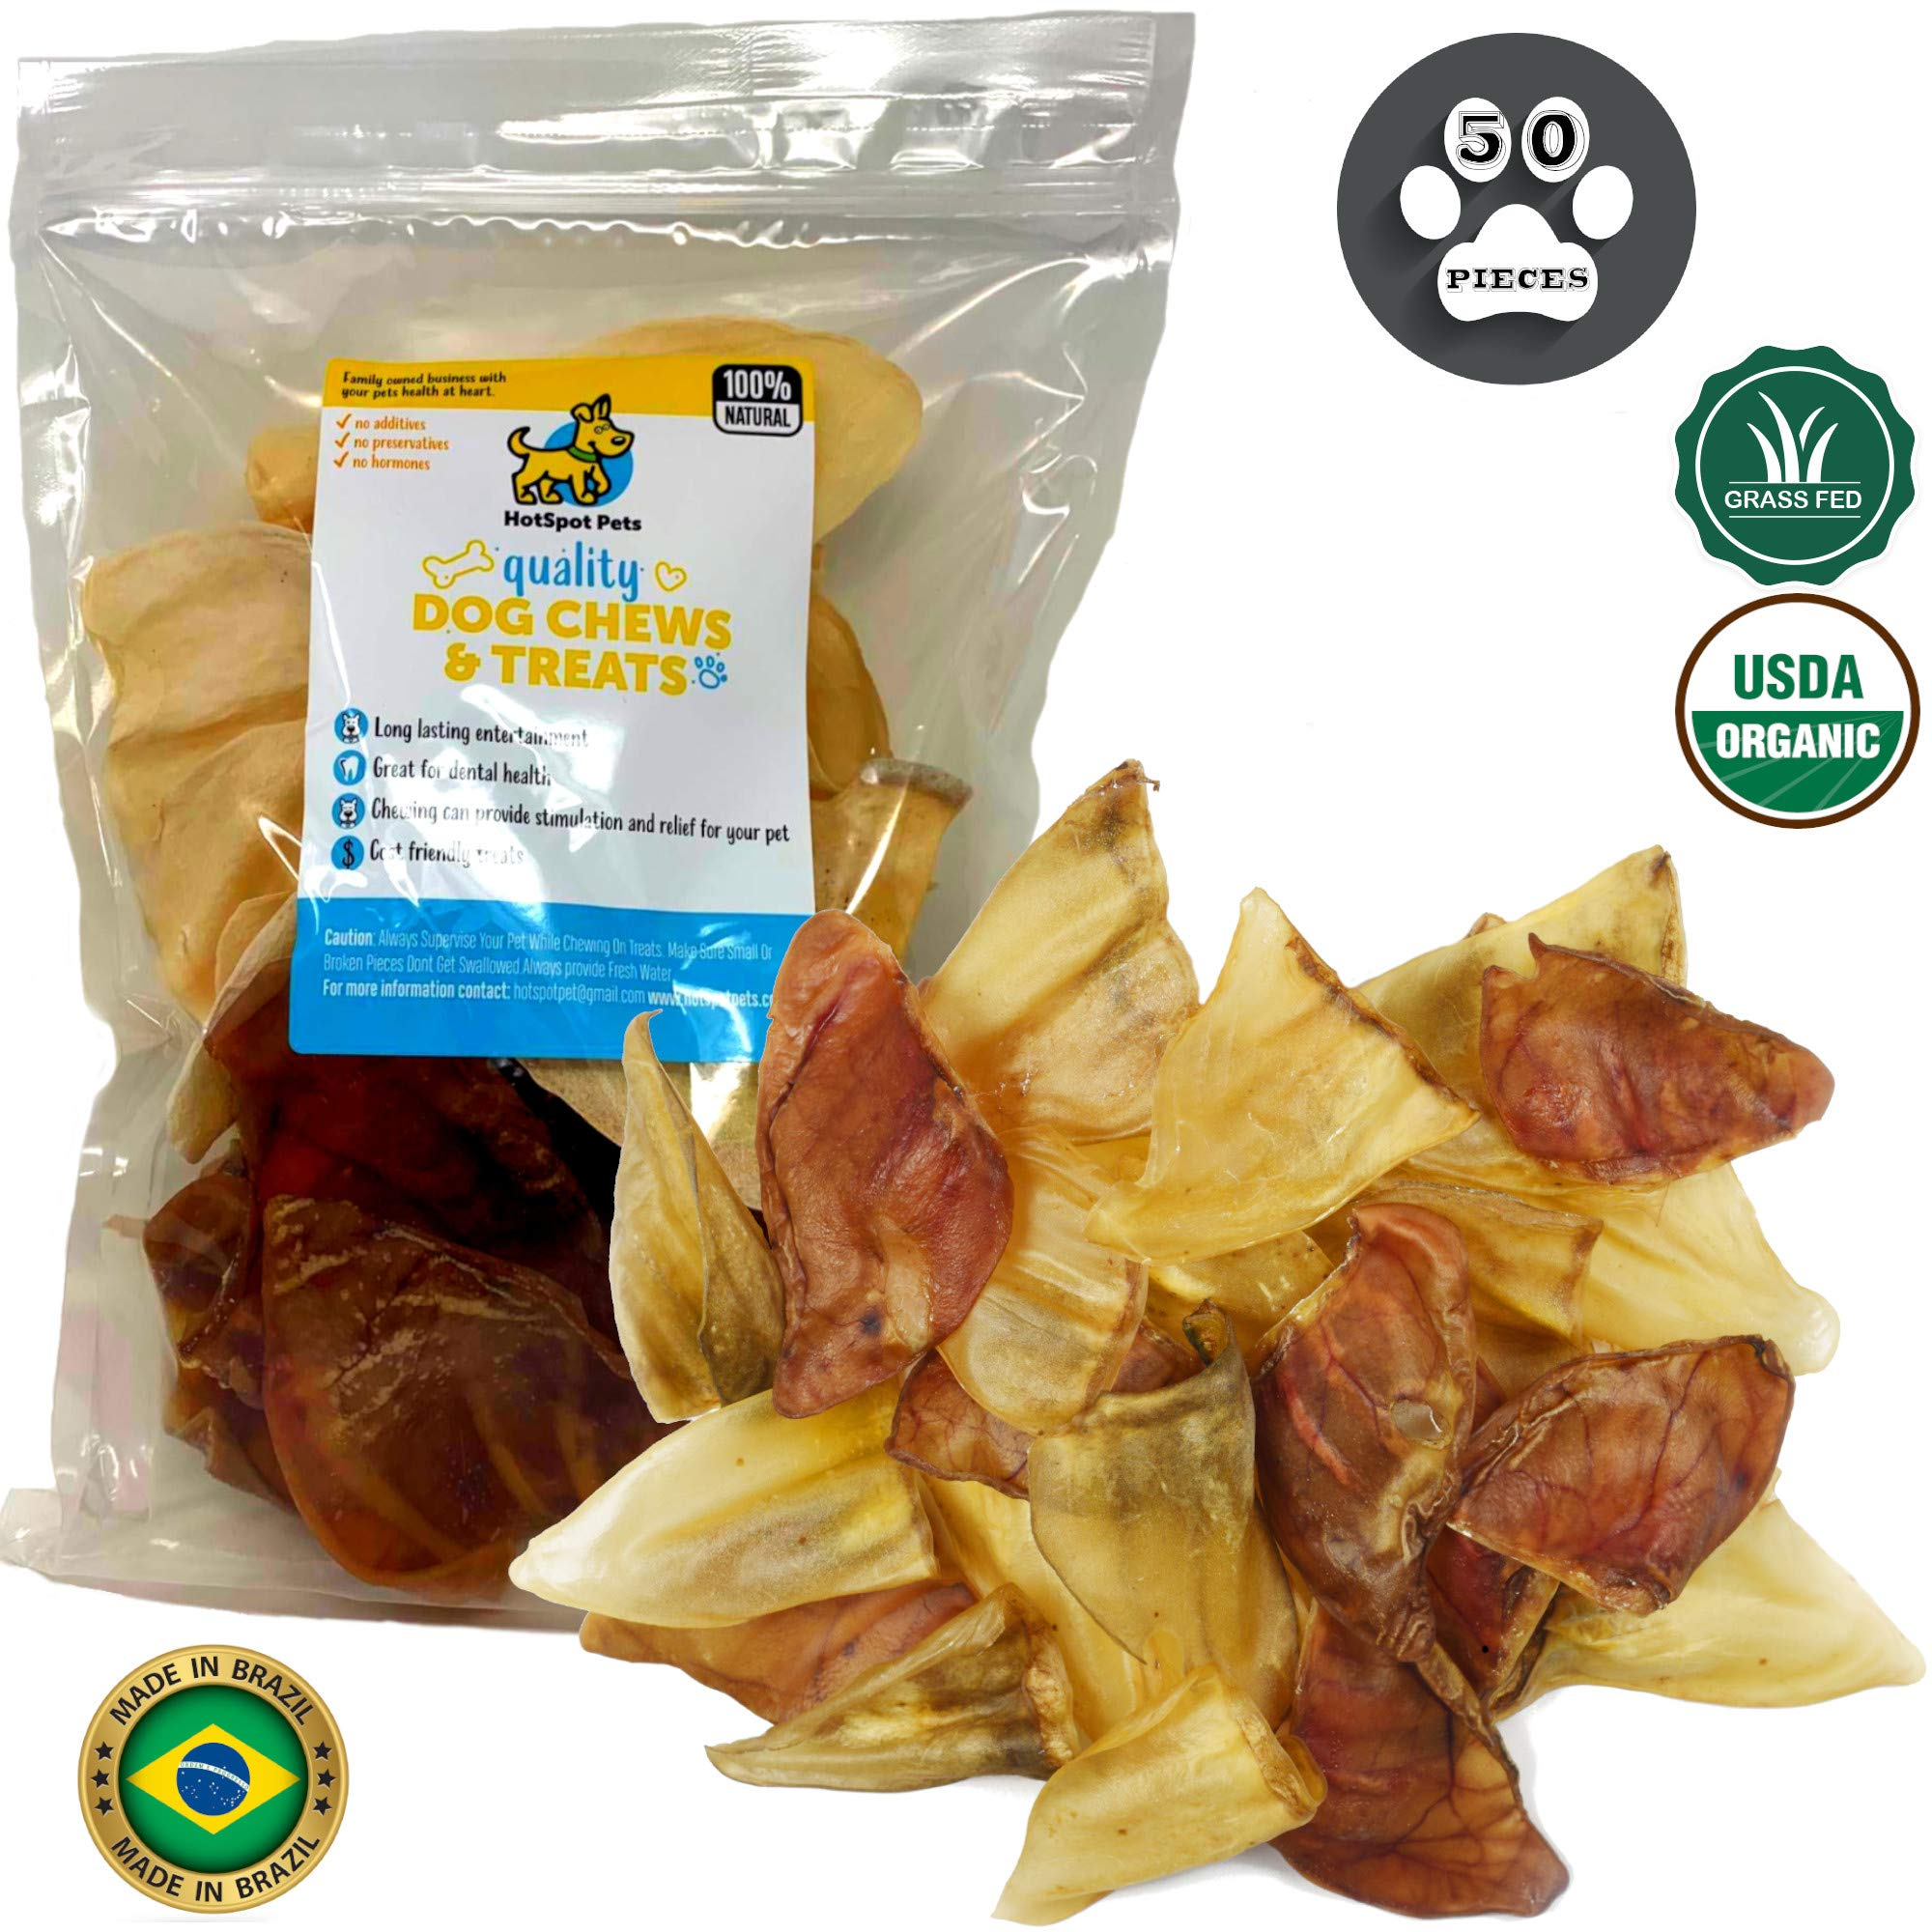 Pig Ears for Dogs Cow Ears for Dogs Large 50 Pack Combo Rawhide Free Dog Chews 100% Natural Pork & Cow Ears USDA Certified Dog Treats - Hotspot Pets